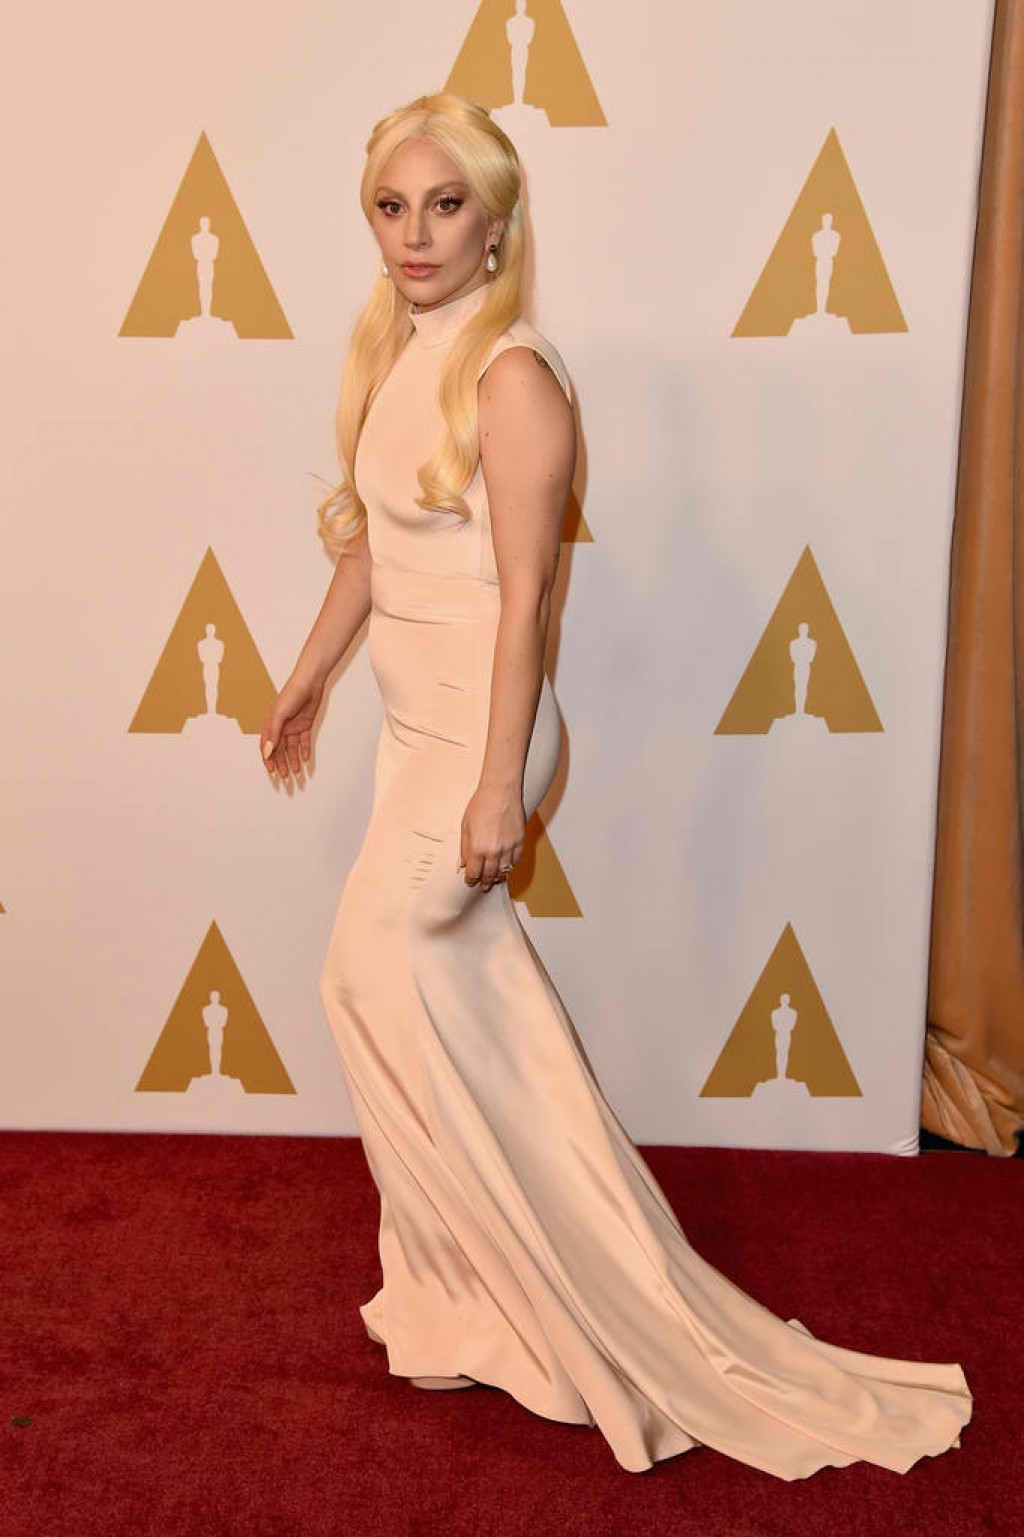 88th-Annual-Academy-Awards-Nominee-Luncheon-Lady-Gaga-2016-1024x1537